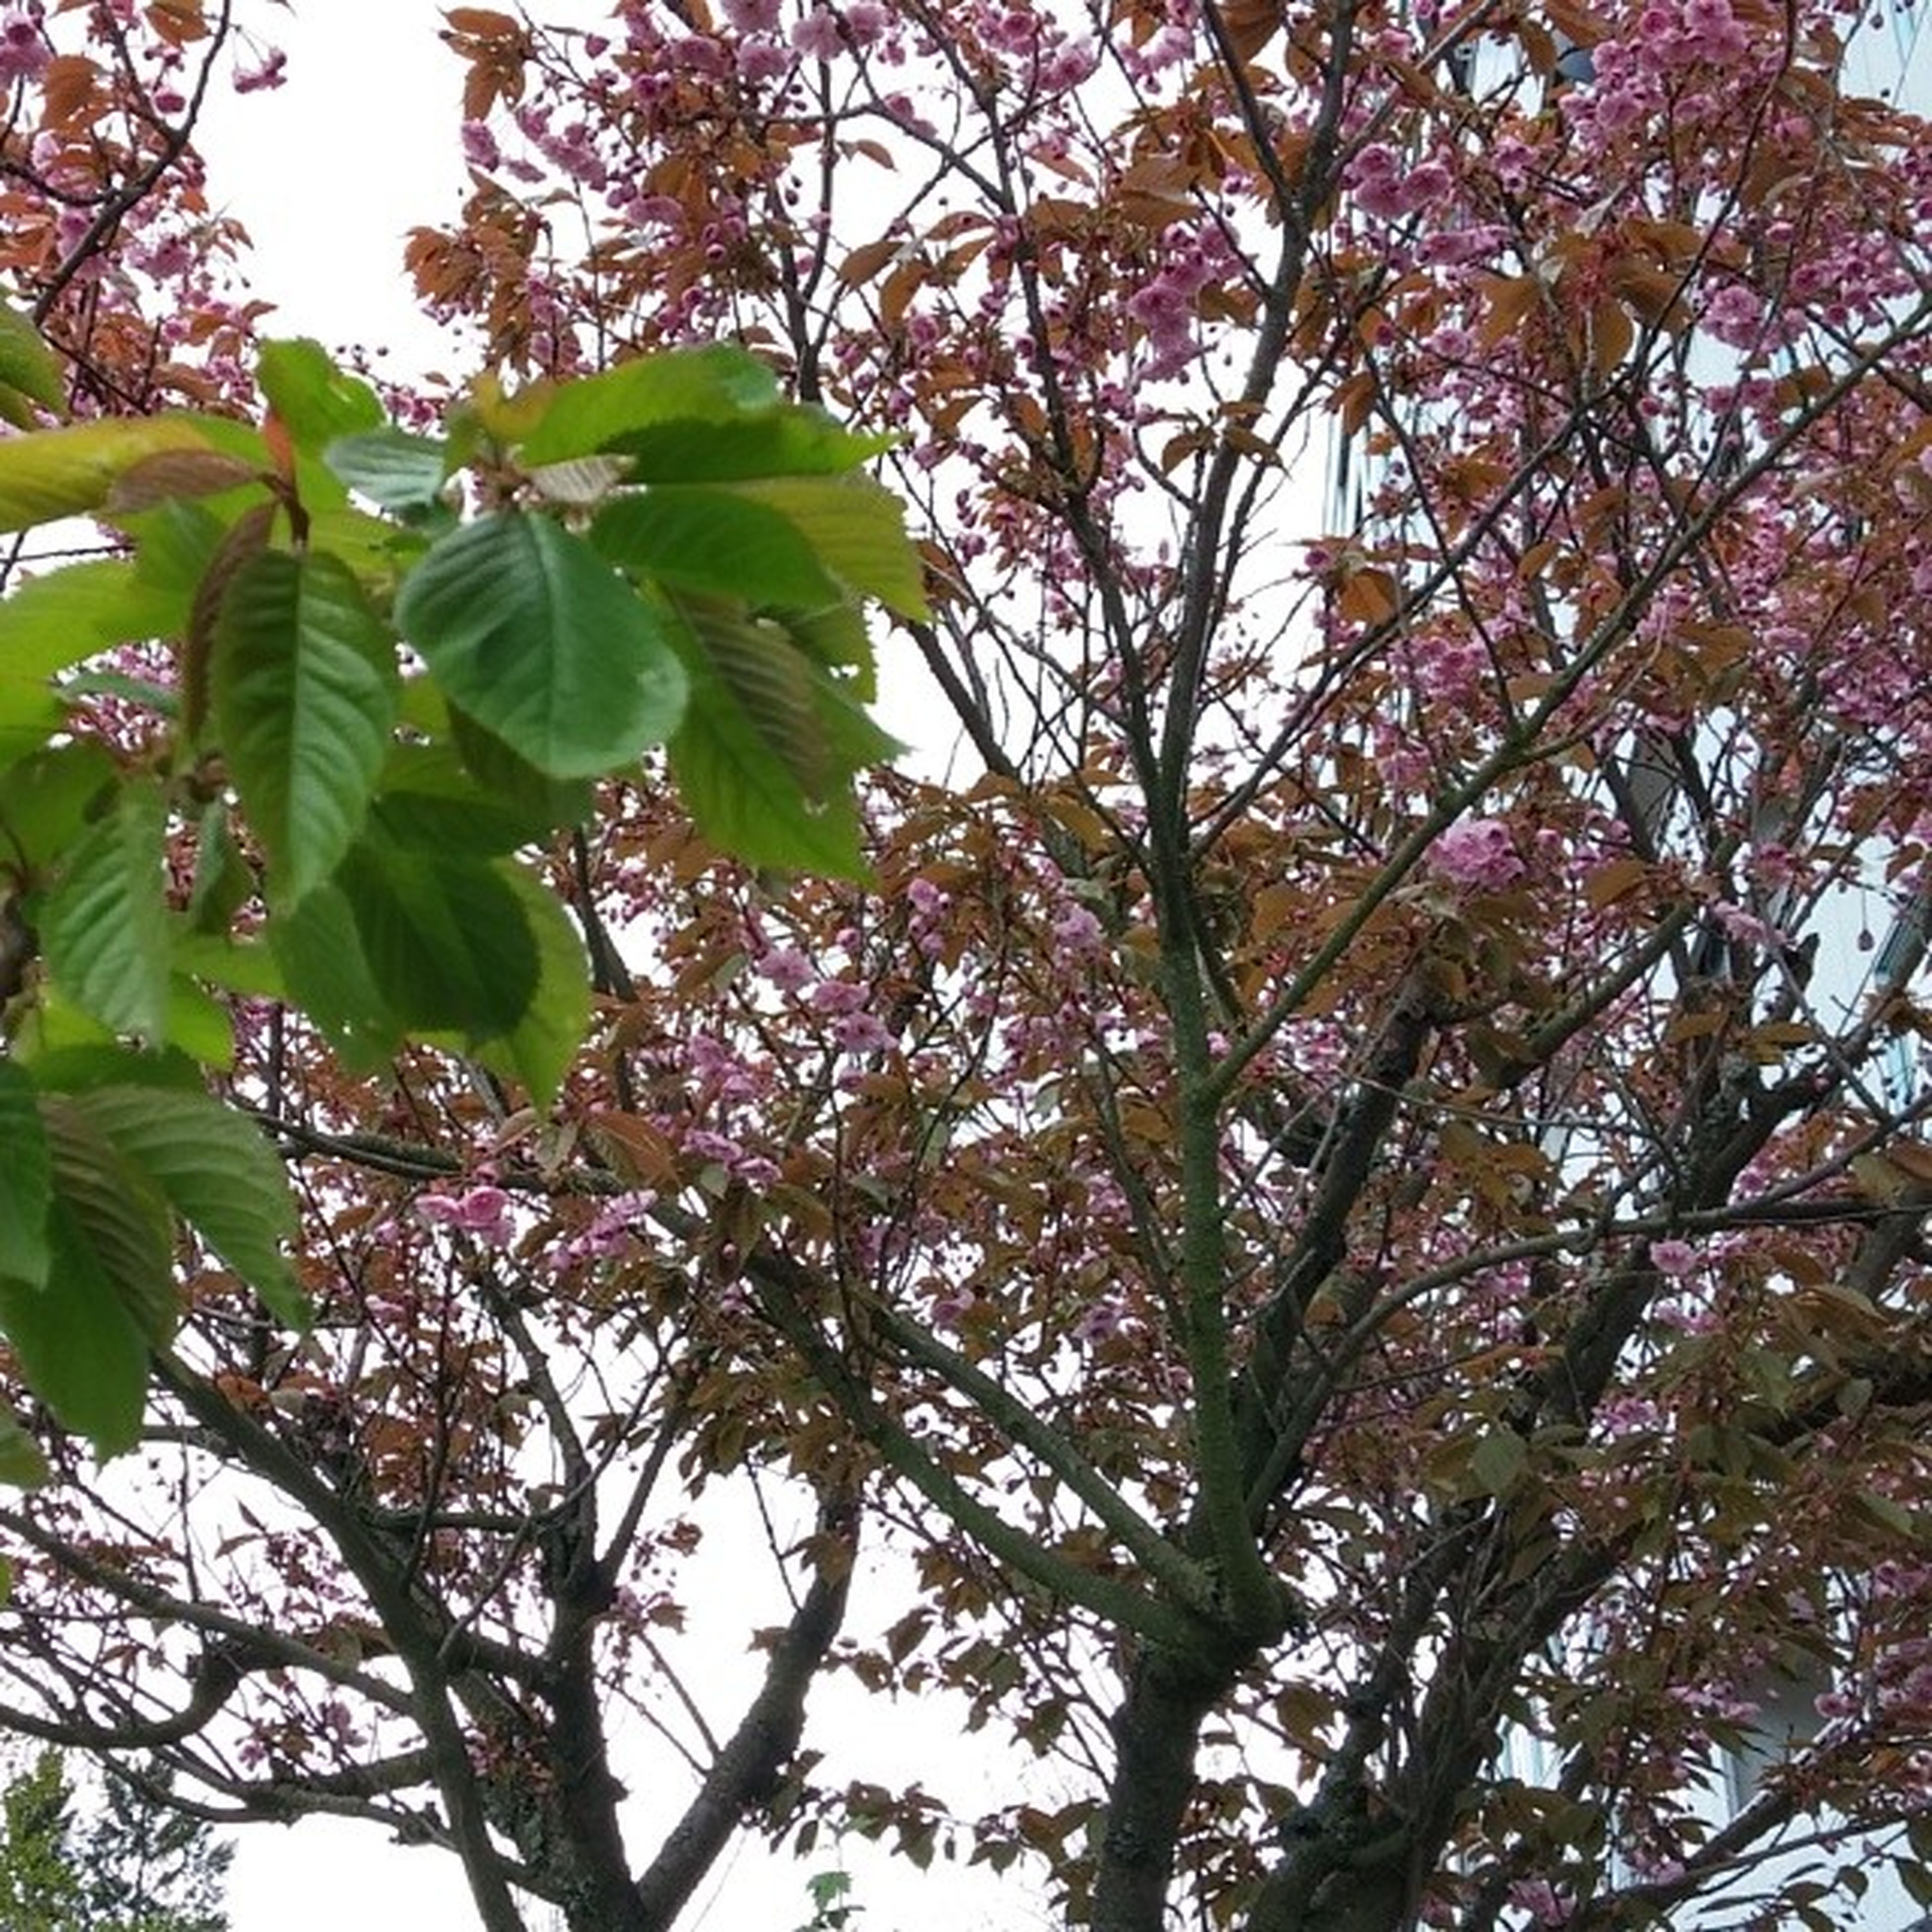 tree, growth, leaf, branch, low angle view, nature, beauty in nature, freshness, green color, close-up, sky, day, outdoors, tranquility, no people, flower, sunlight, plant, focus on foreground, fragility